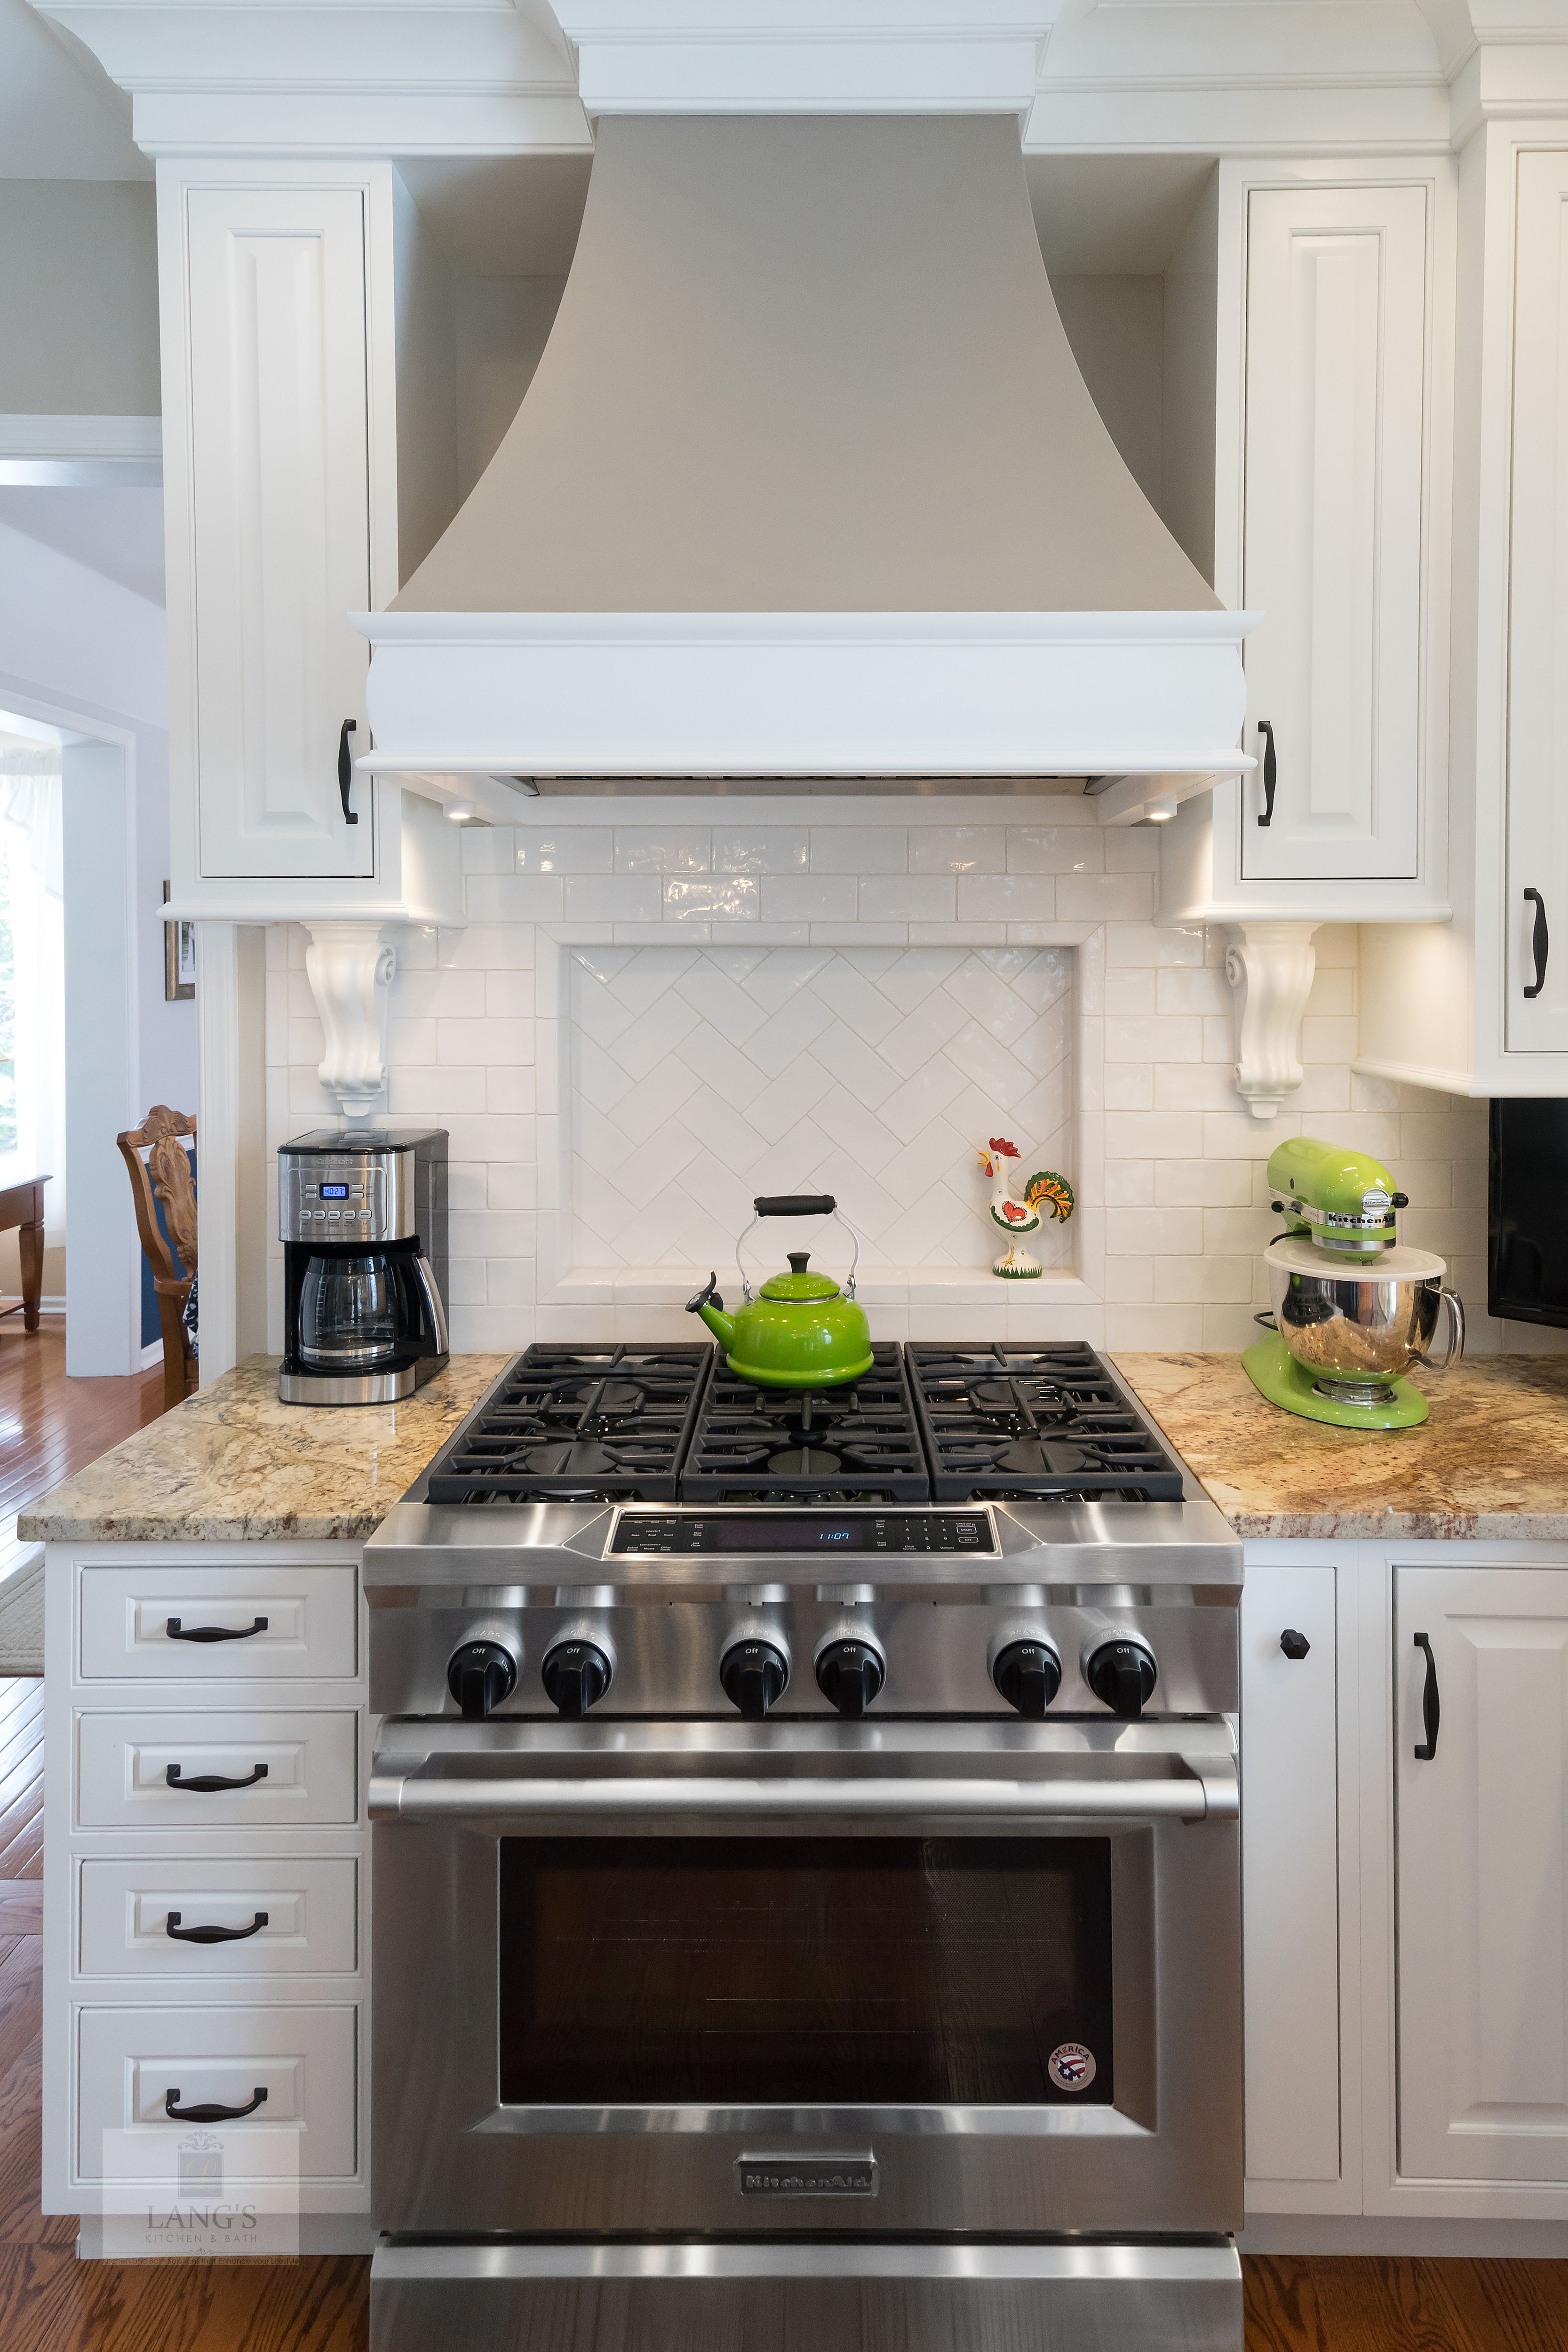 The Painted White Durasupreme Kitchen Cabinets Create A Bright Backdrop For This Tra Traditional Style Kitchen Design Home Decor Kitchen Kitchen Aid Appliances